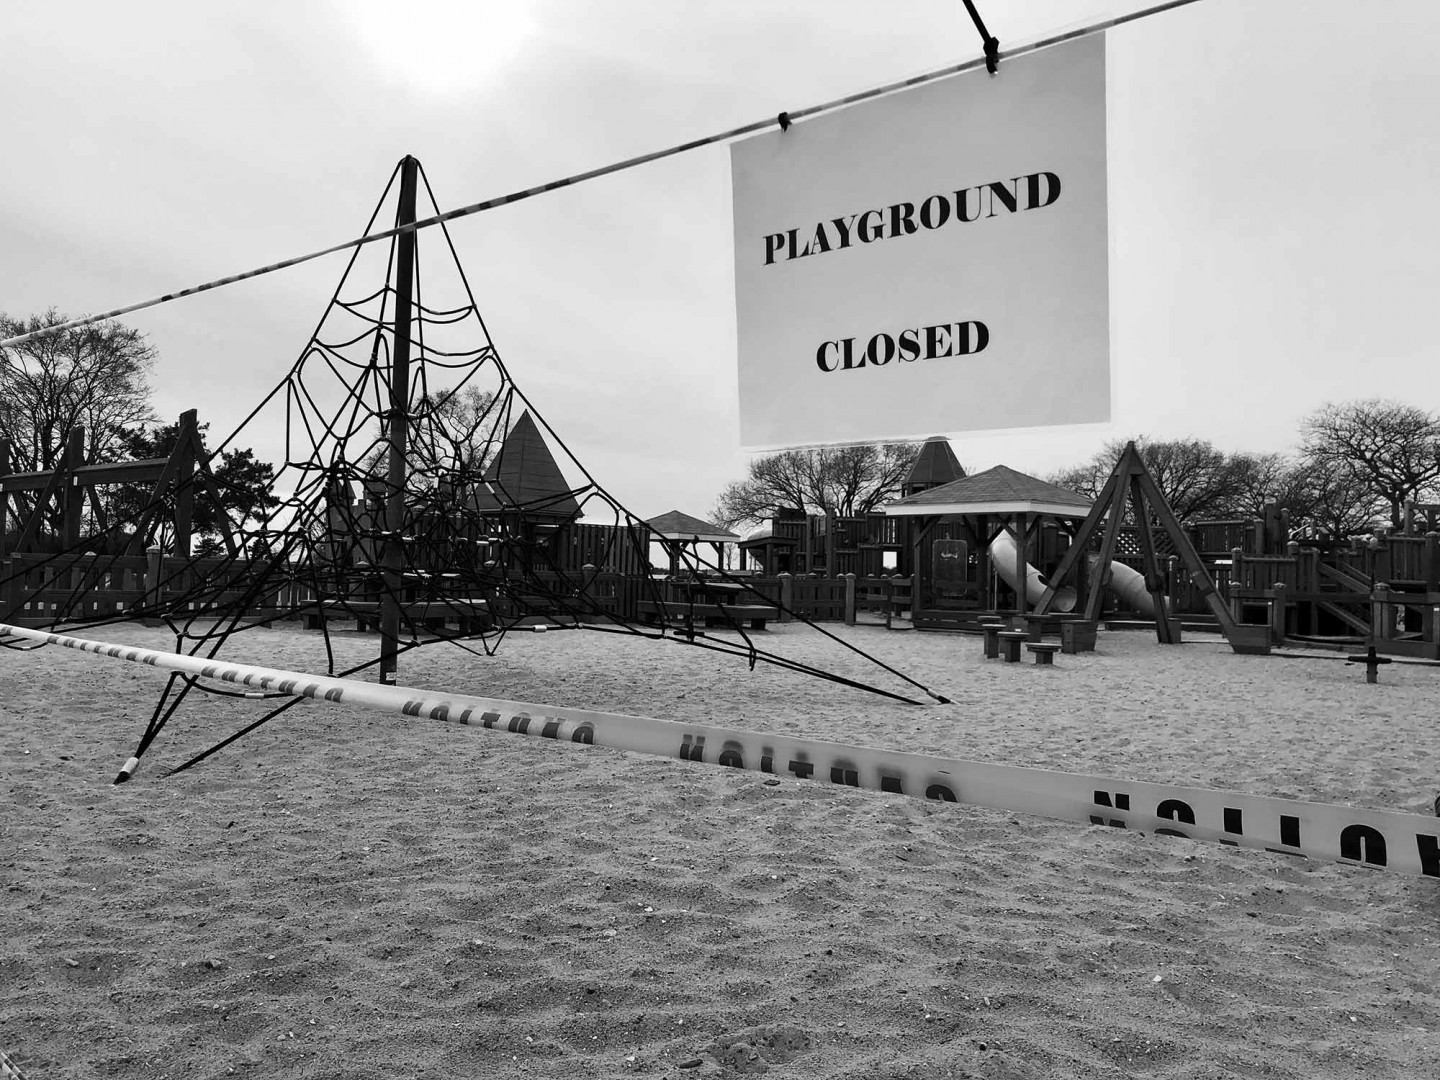 Empty Playground, Connecticut, USA, 18 March © Chris Craymer